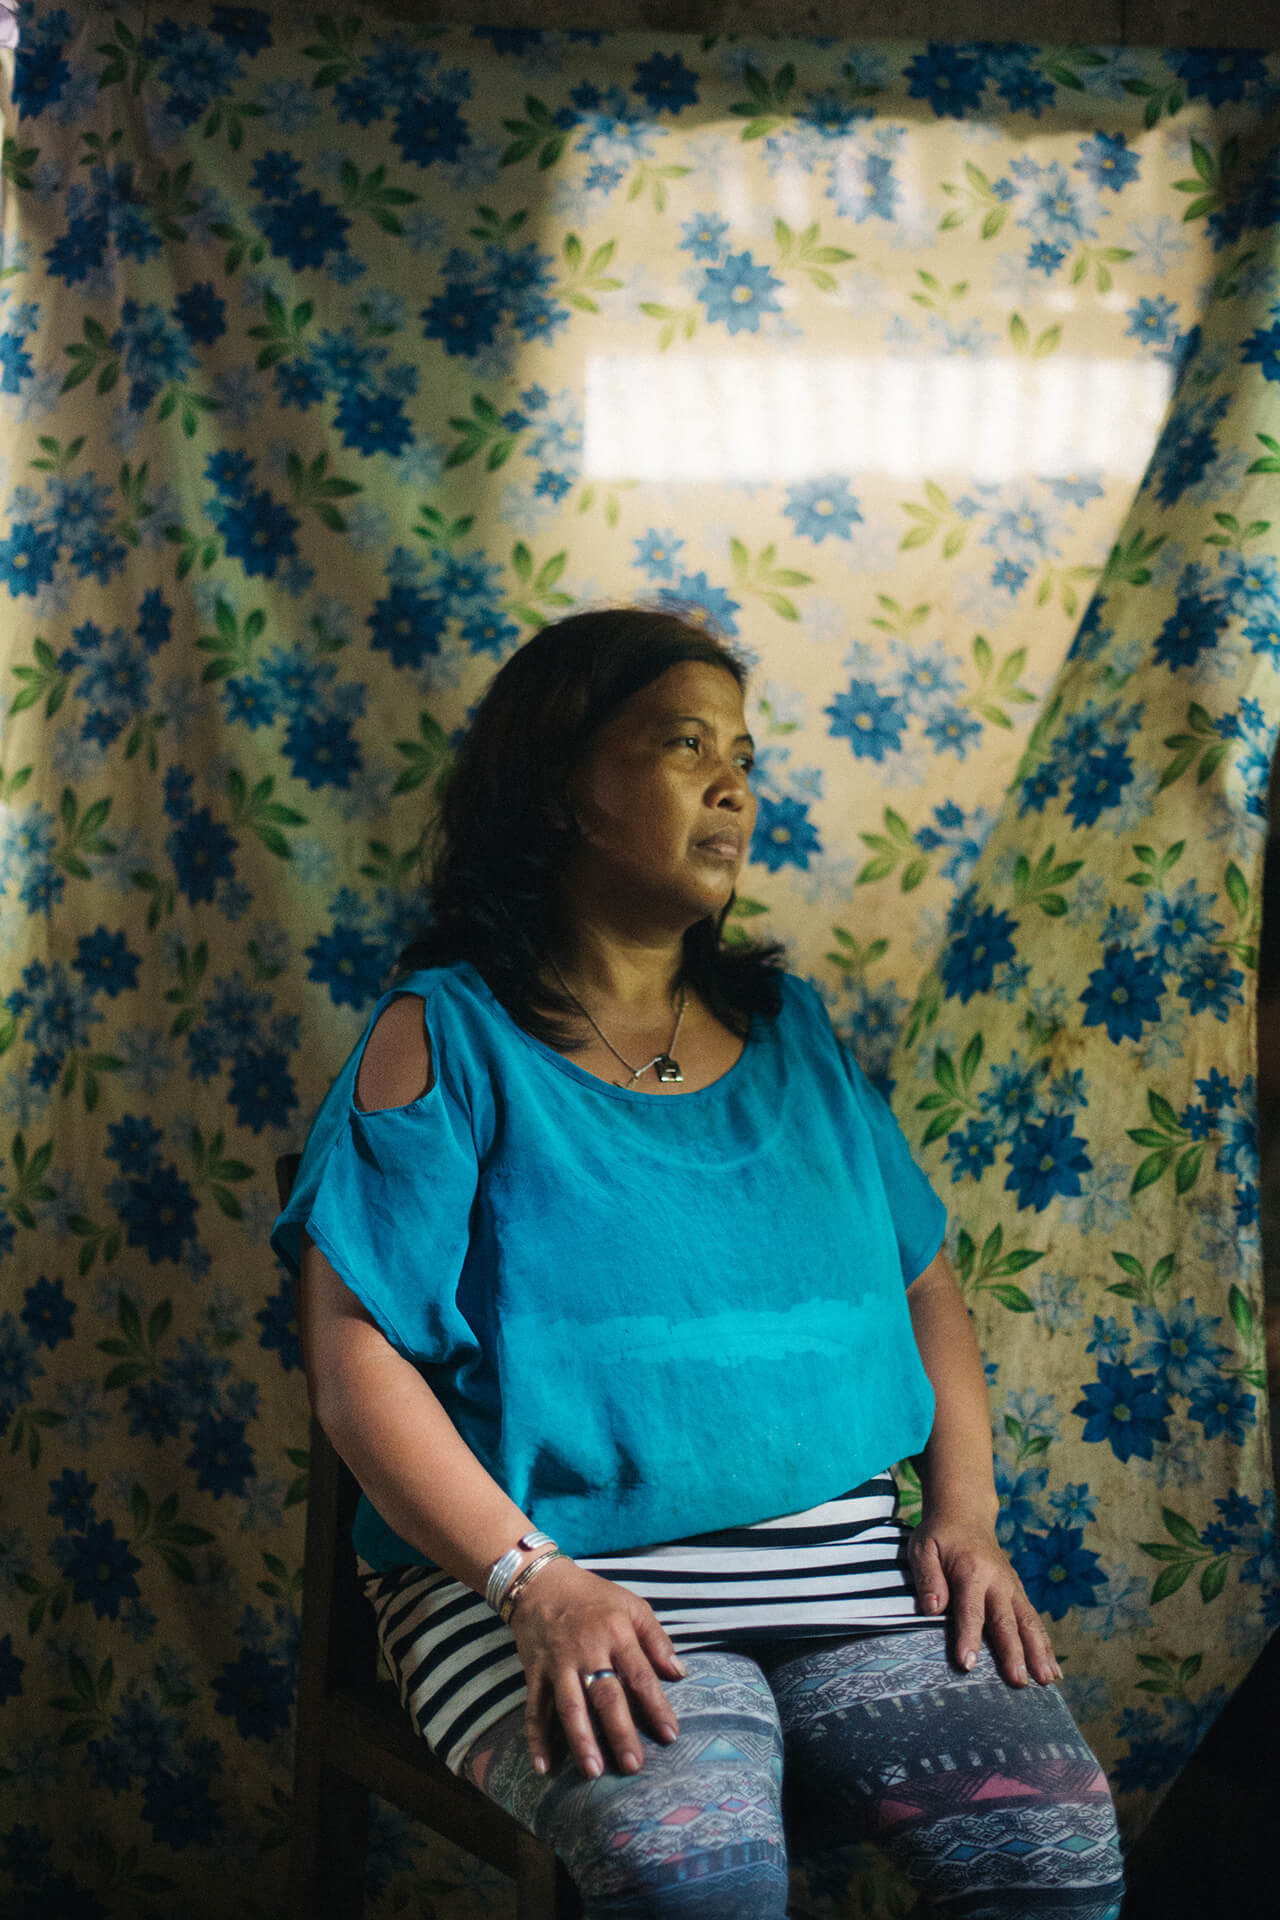 Mananambal Annie Ponce, a Dipolog transplant who married into a family of local healers